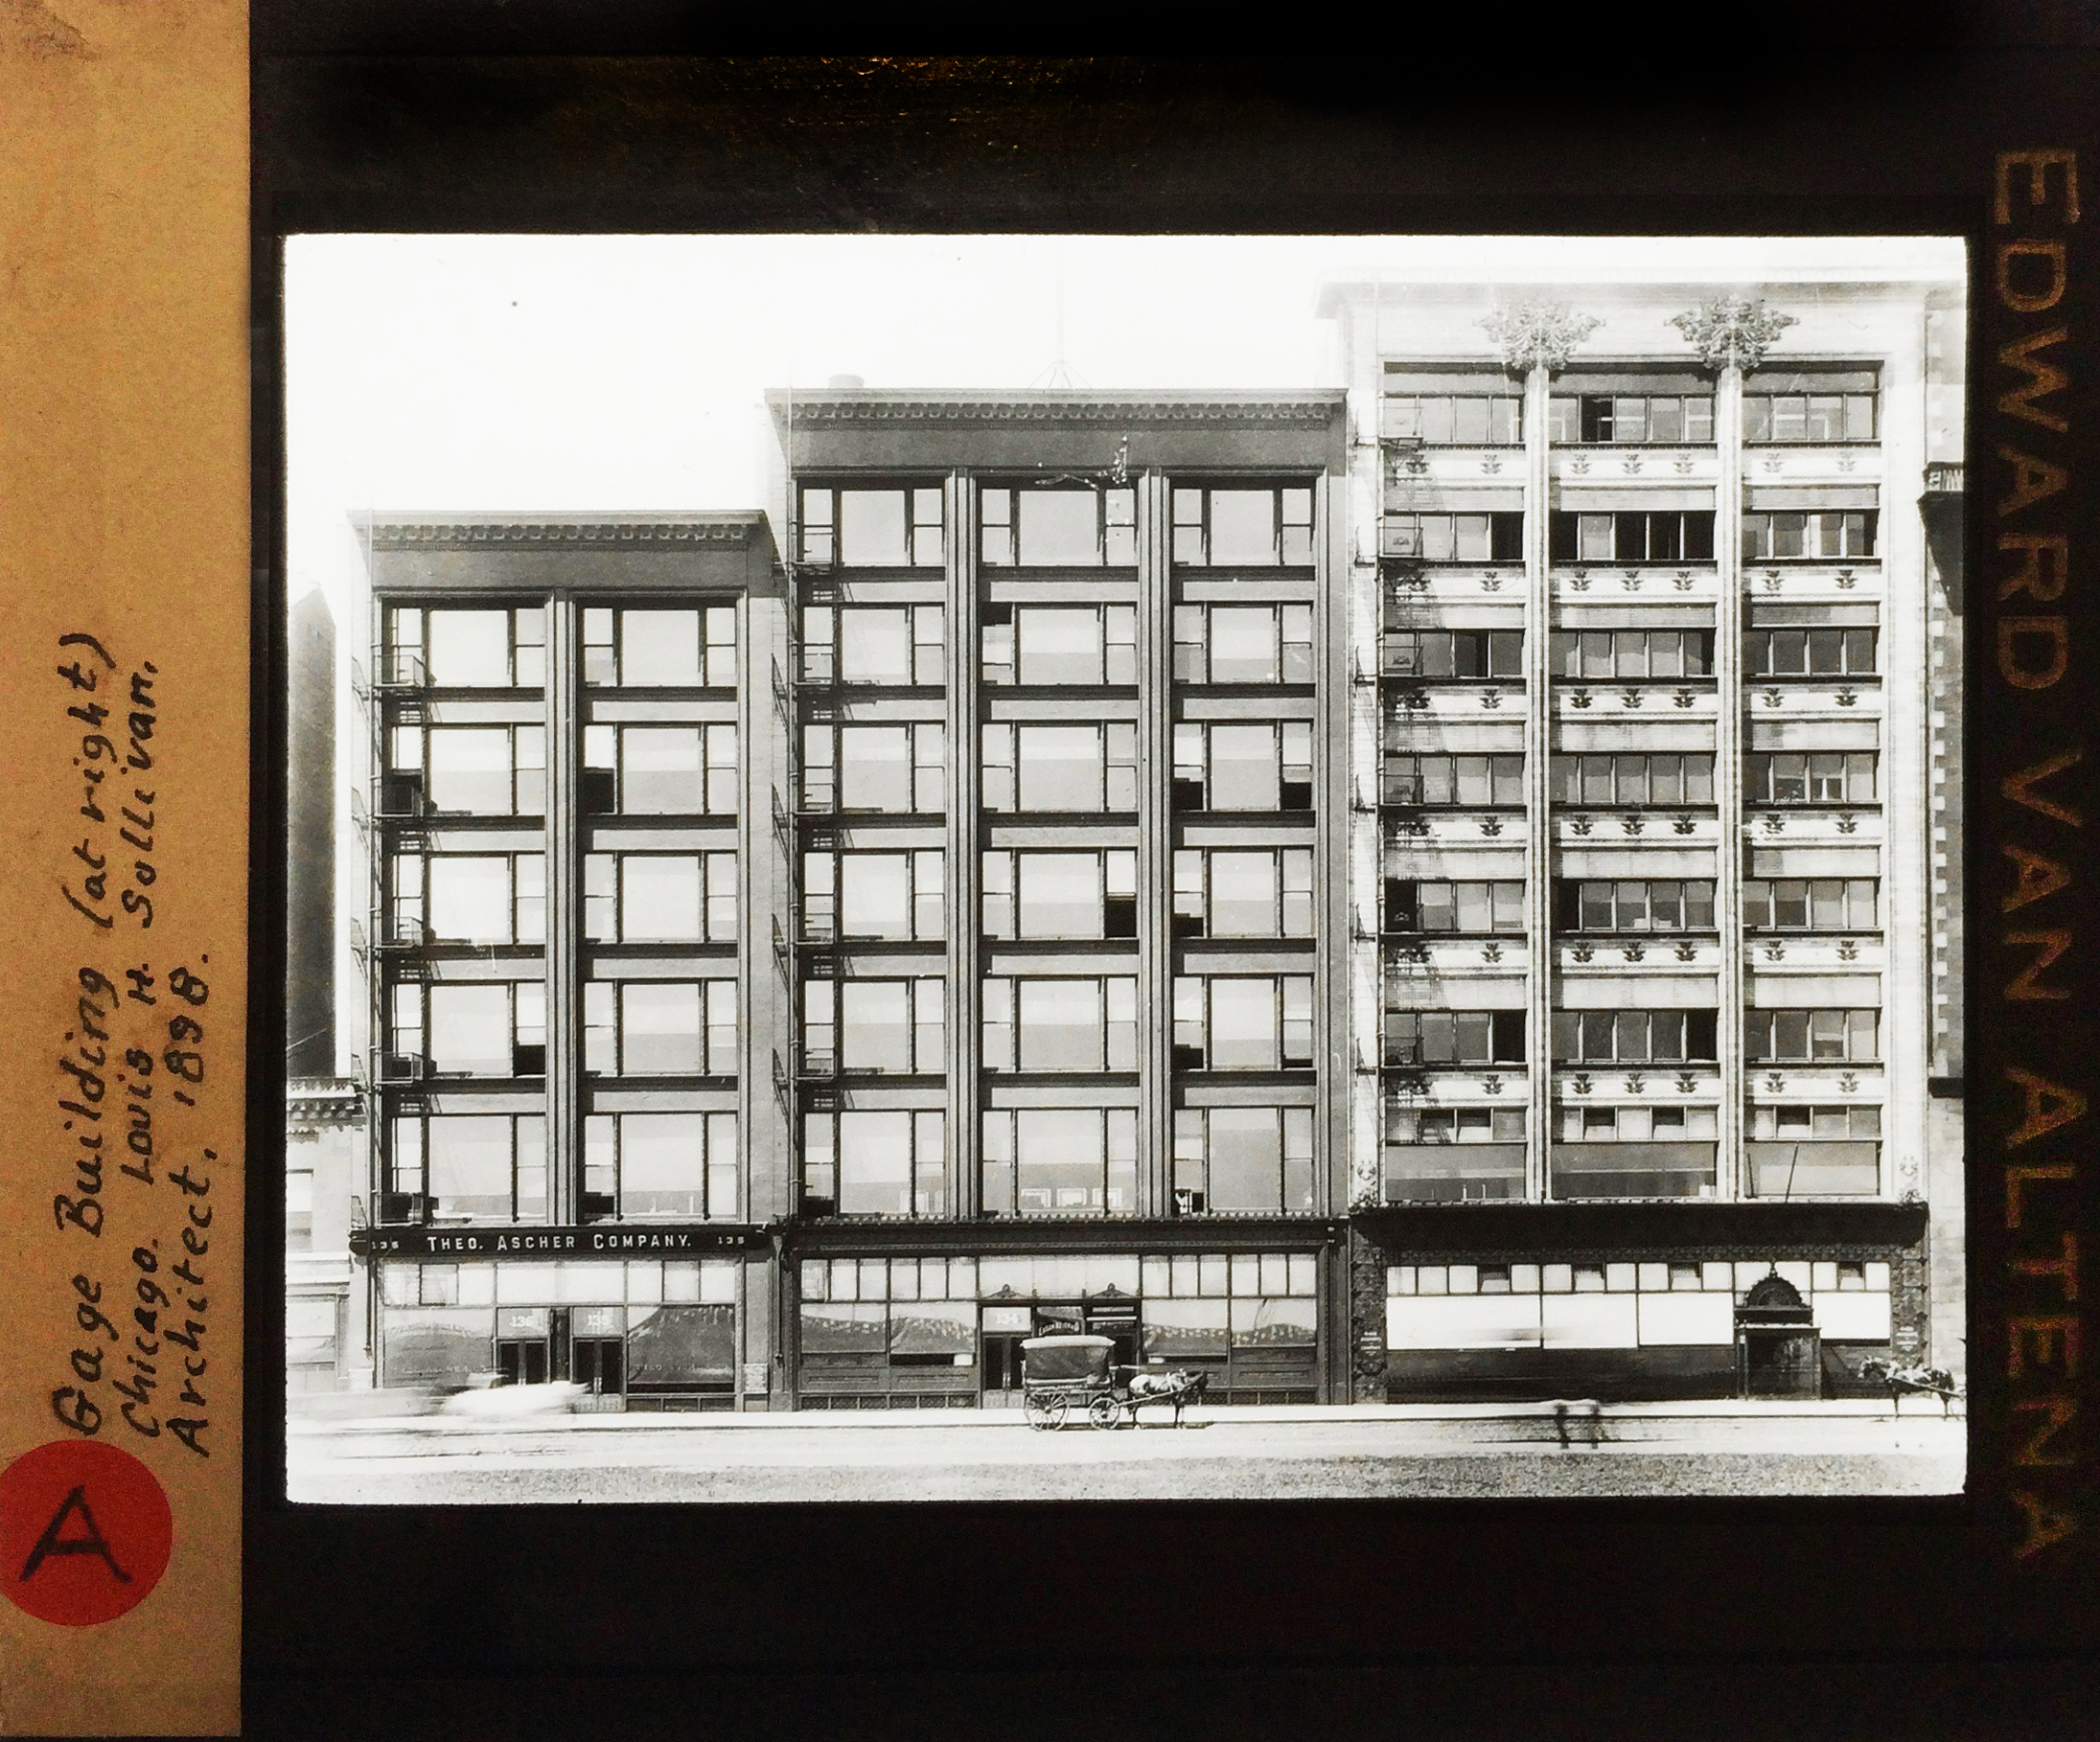 Image: Sigfried Giedionu0027s Lecture Slide Of The Gage Group Buildings By  Holabird And Roche. A Facade By Louis Sullivan Graces The Rightmost  Structure.